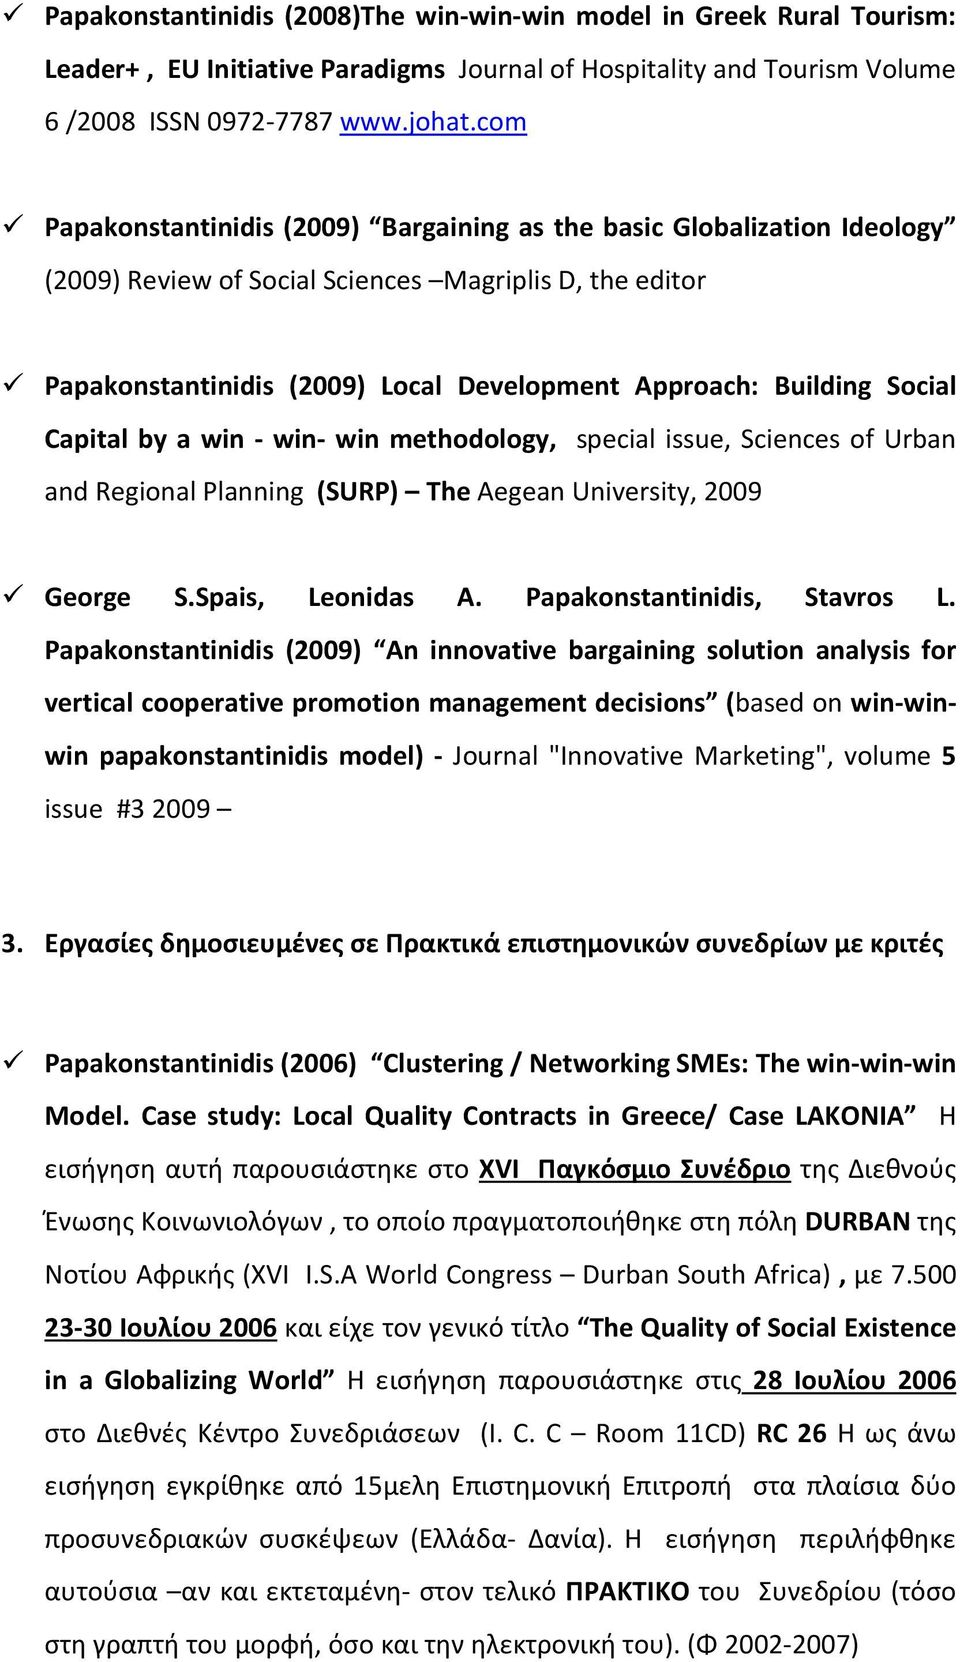 Social Capital by a win - win- win methodology, special issue, Sciences of Urban and Regional Planning (SURP) The Aegean University, 2009 George S.Spais, Leonidas A. Papakonstantinidis, Stavros L.